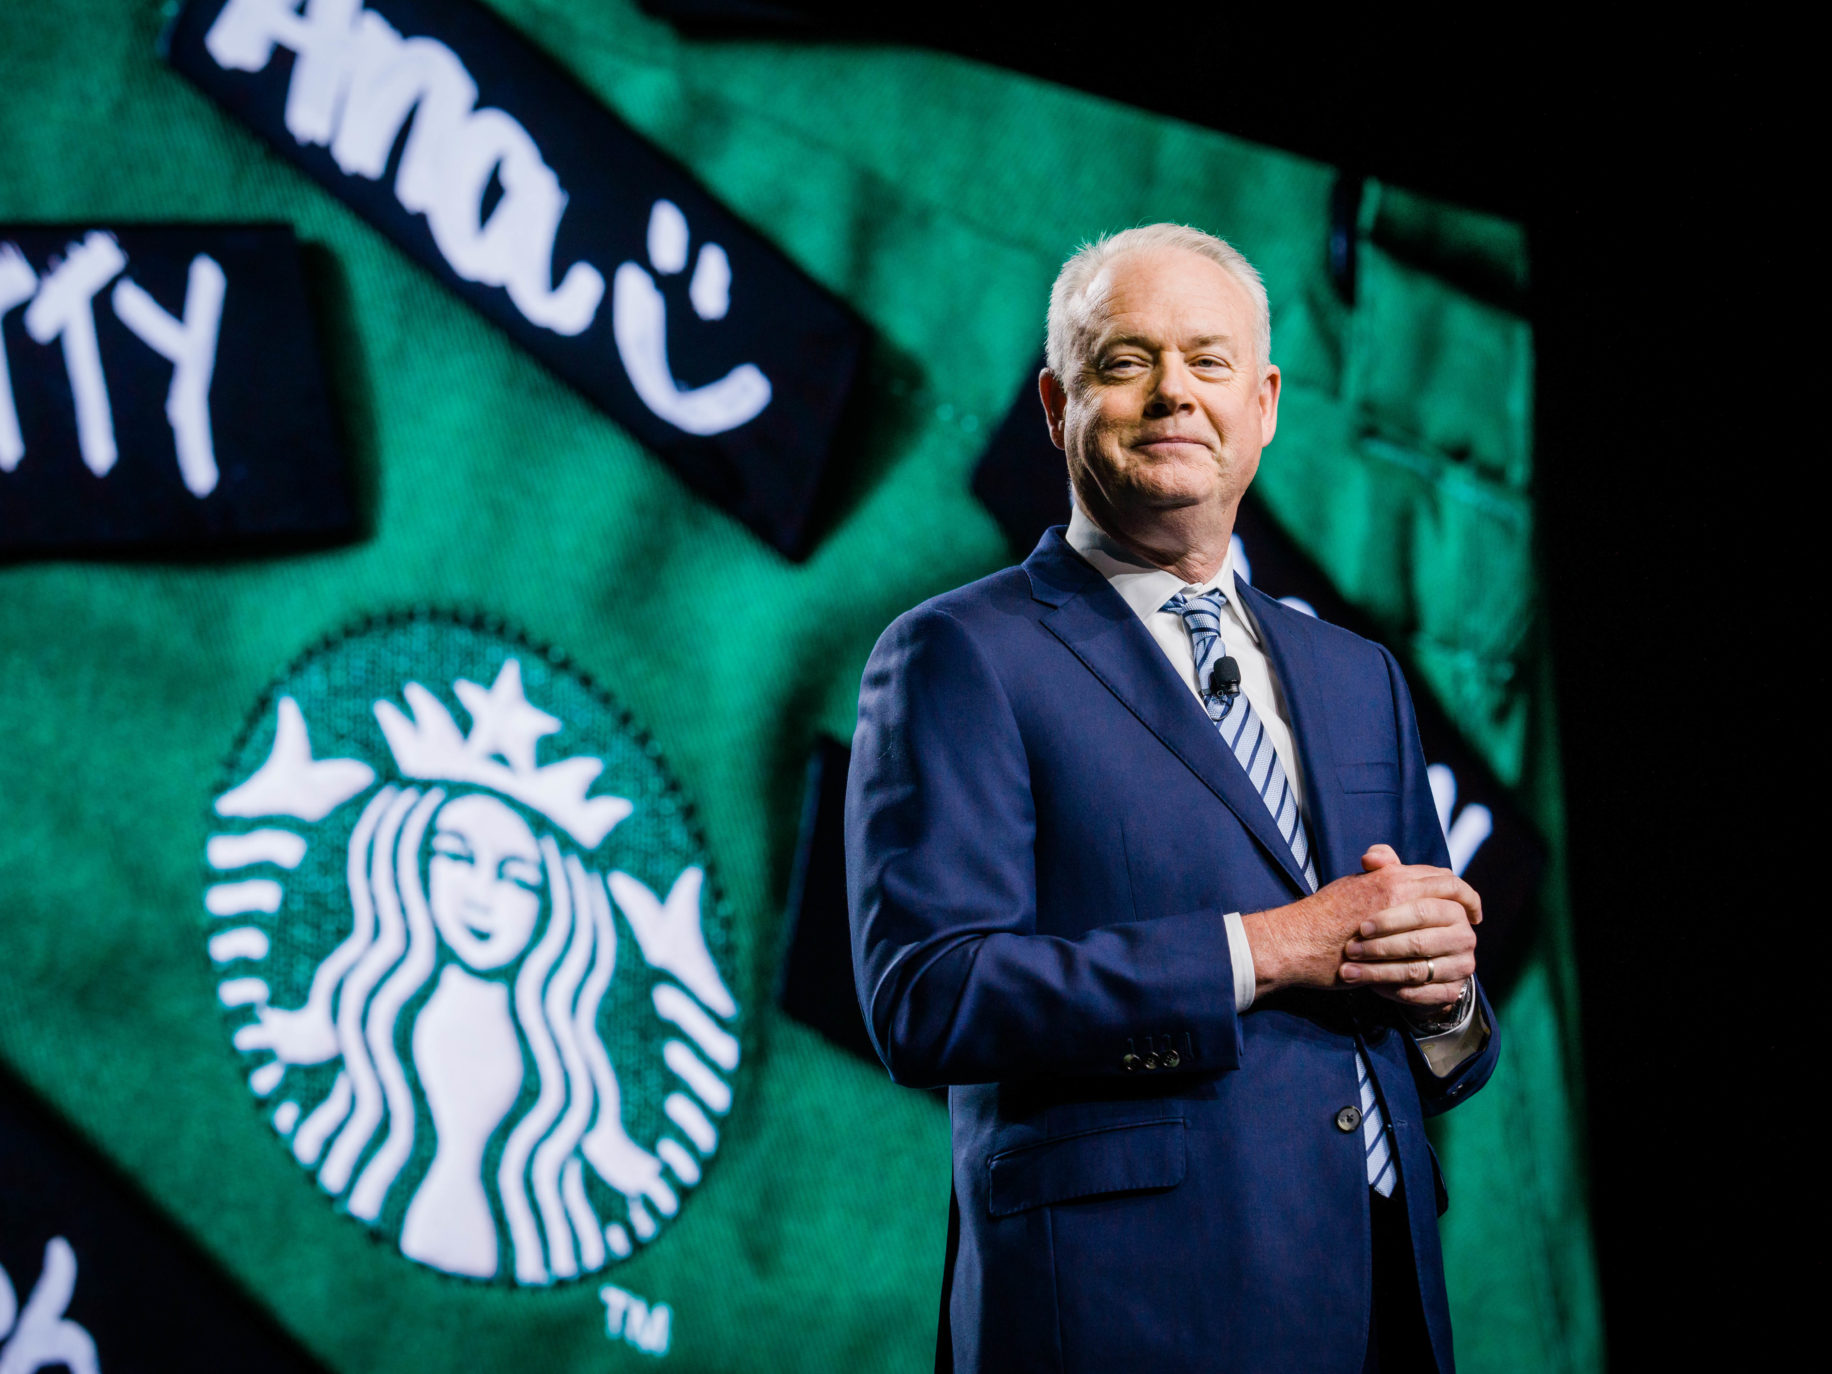 Starbucks CEO lays out plan for 'next phase' as coffee giant looks to reopen U.S. stores